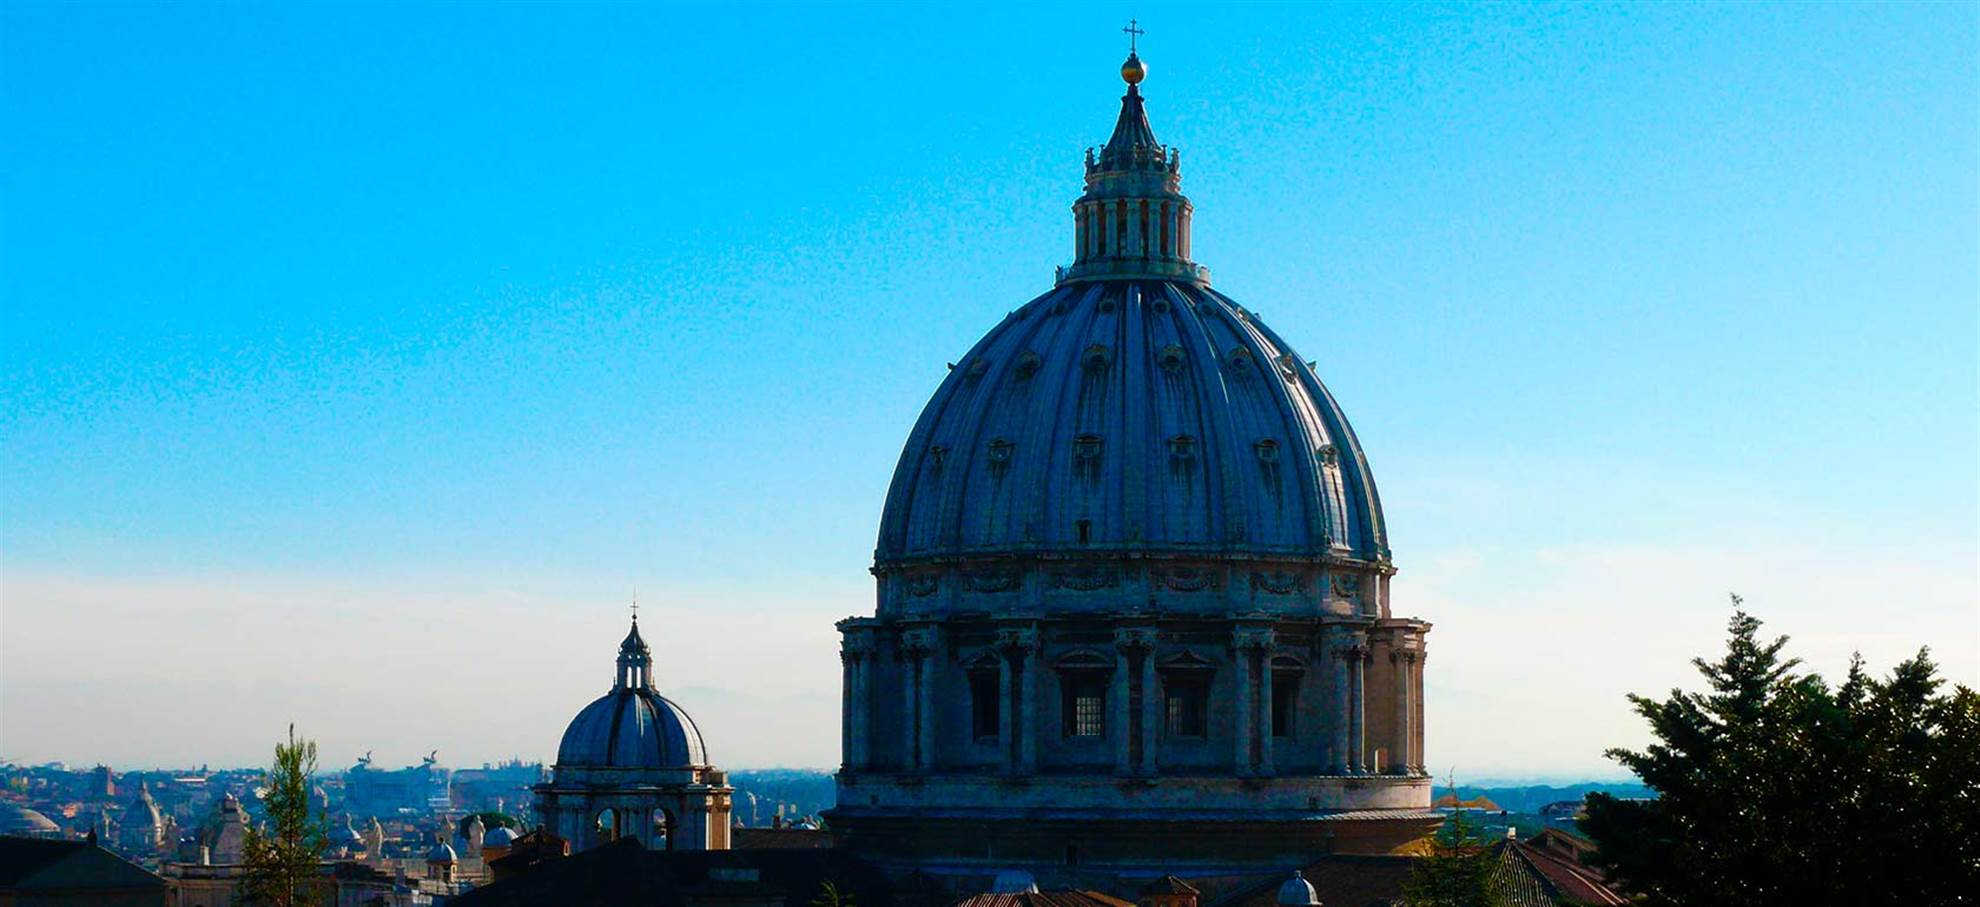 St. Peter's Basilica and Cupola